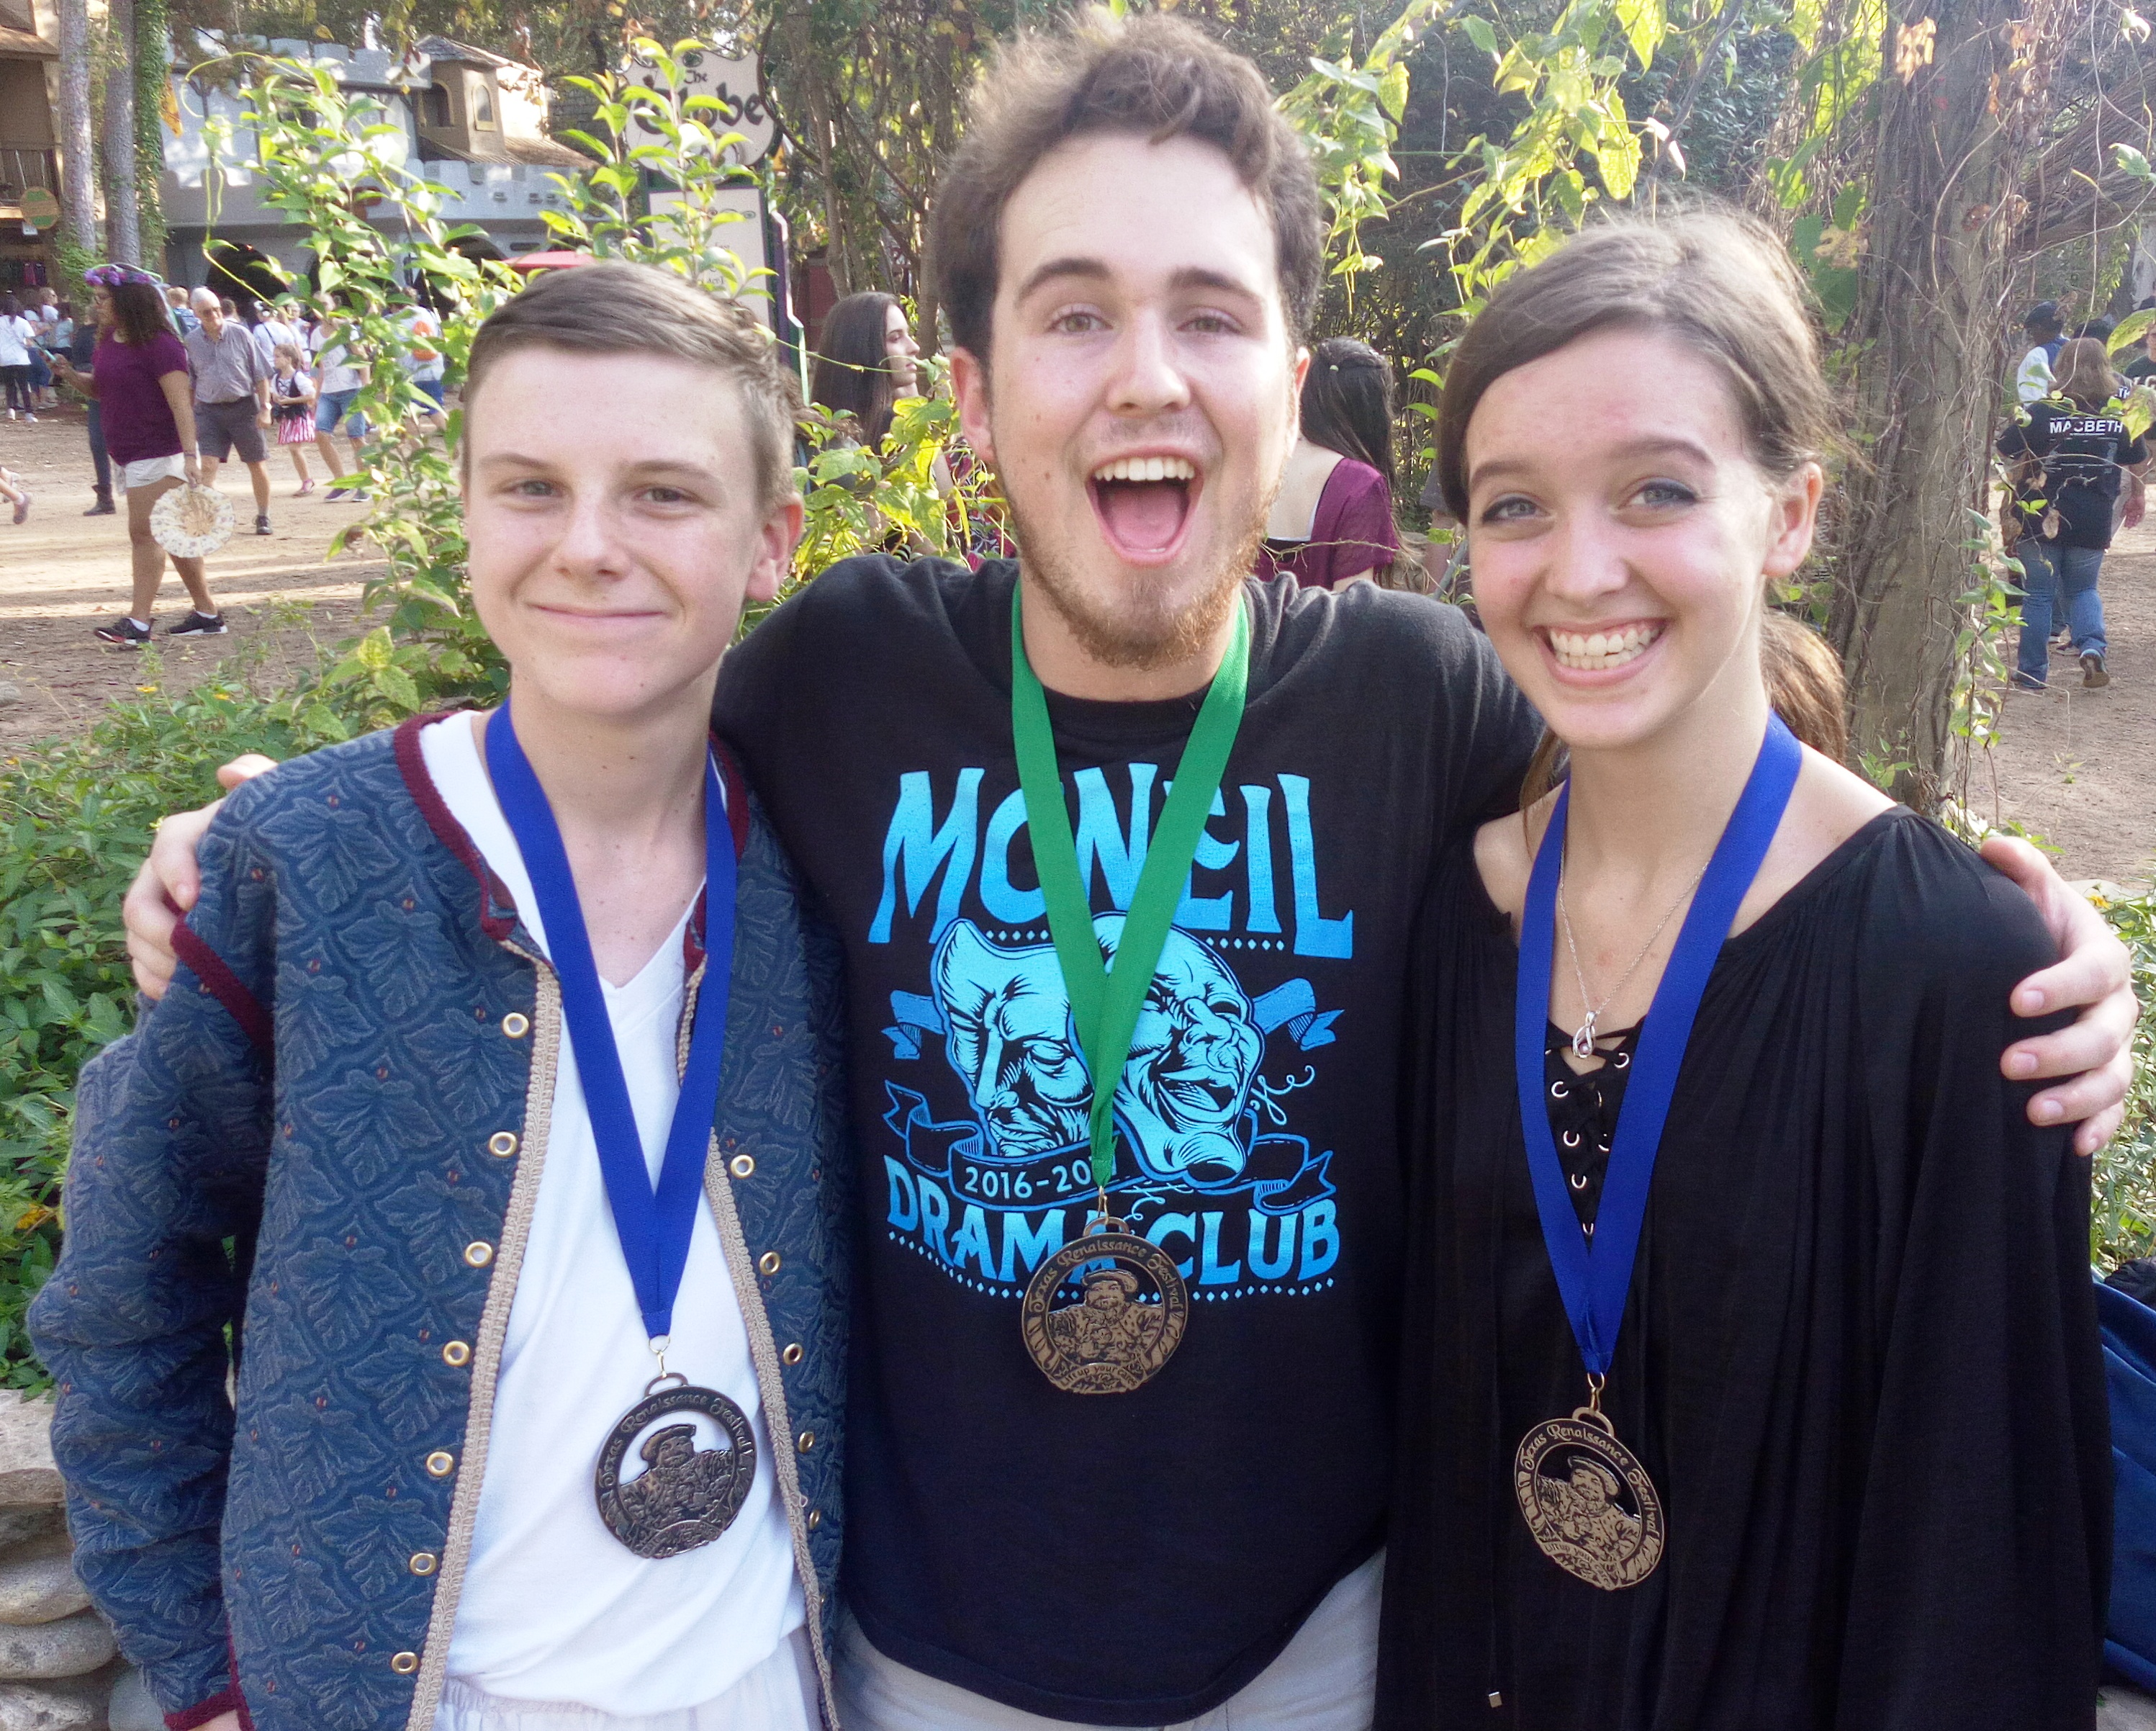 McNeil Theatre wins at Texas Renaissance Festival